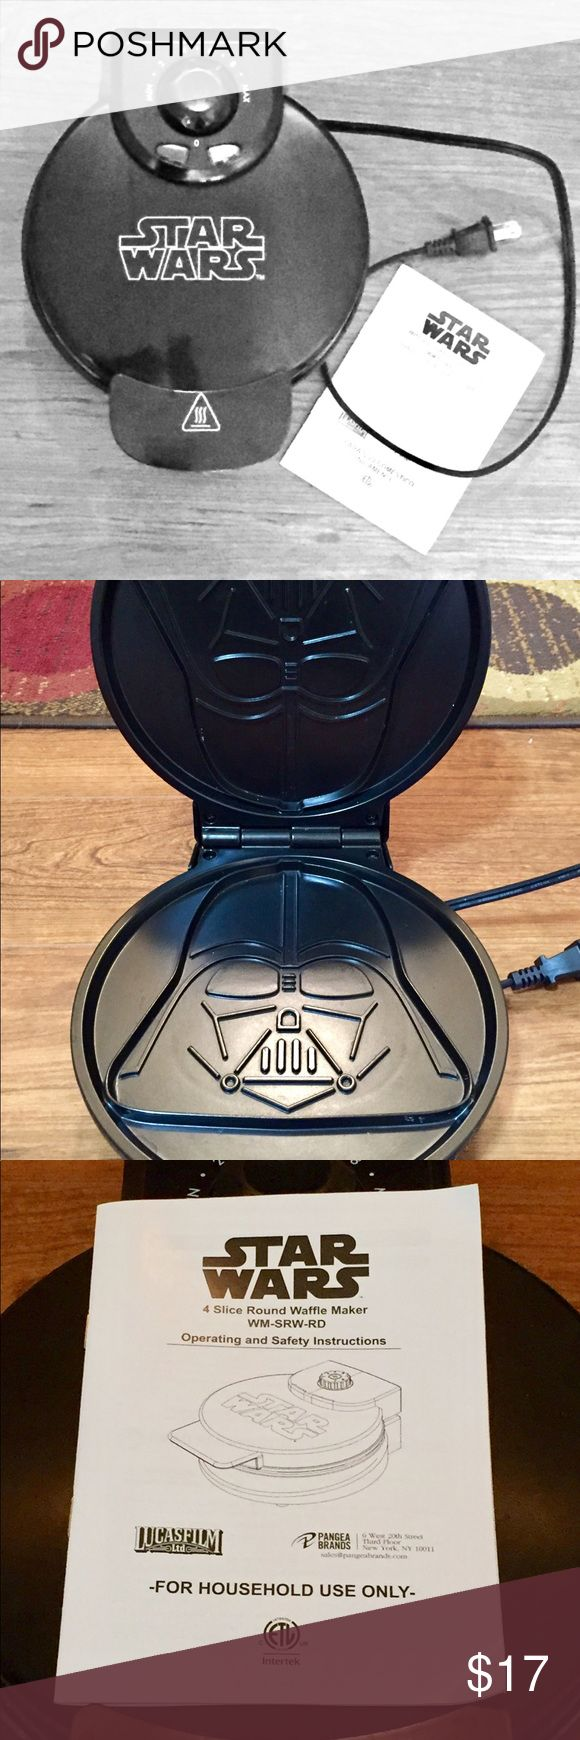 CHRISTMAS! New MOVIE!  STAR WARS waffle maker STAR WARS Darth Vader waffle maker.  Perhaps used 2-3 times.  Selling because I prefer my Belgium waffle maker for freezing.  Novelty, fun item for little boys (and big ones!). Girls enjoy it too :-).   Currently selling for $40 on Amazon.   Perfect timing for new Star Wars movie and Christmas!! Star Wars Other